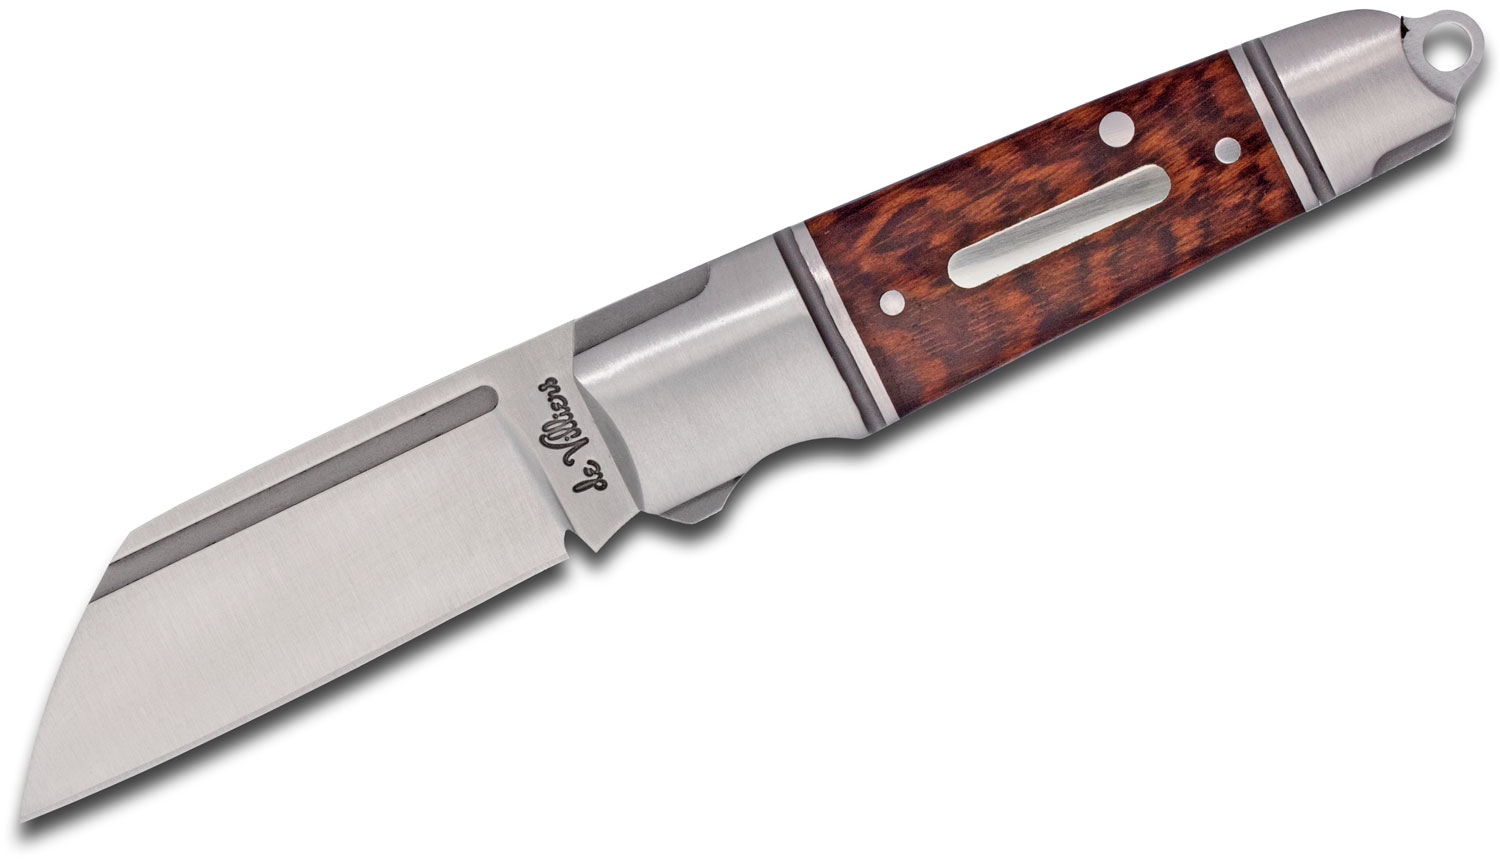 Andre De Villiers Knives Mini Pocket Butcher Slipjoint Folding Knife 2.125 inch N690 Wharncliffe Blade, Stainless Steel Handles with Rosewood Inlays